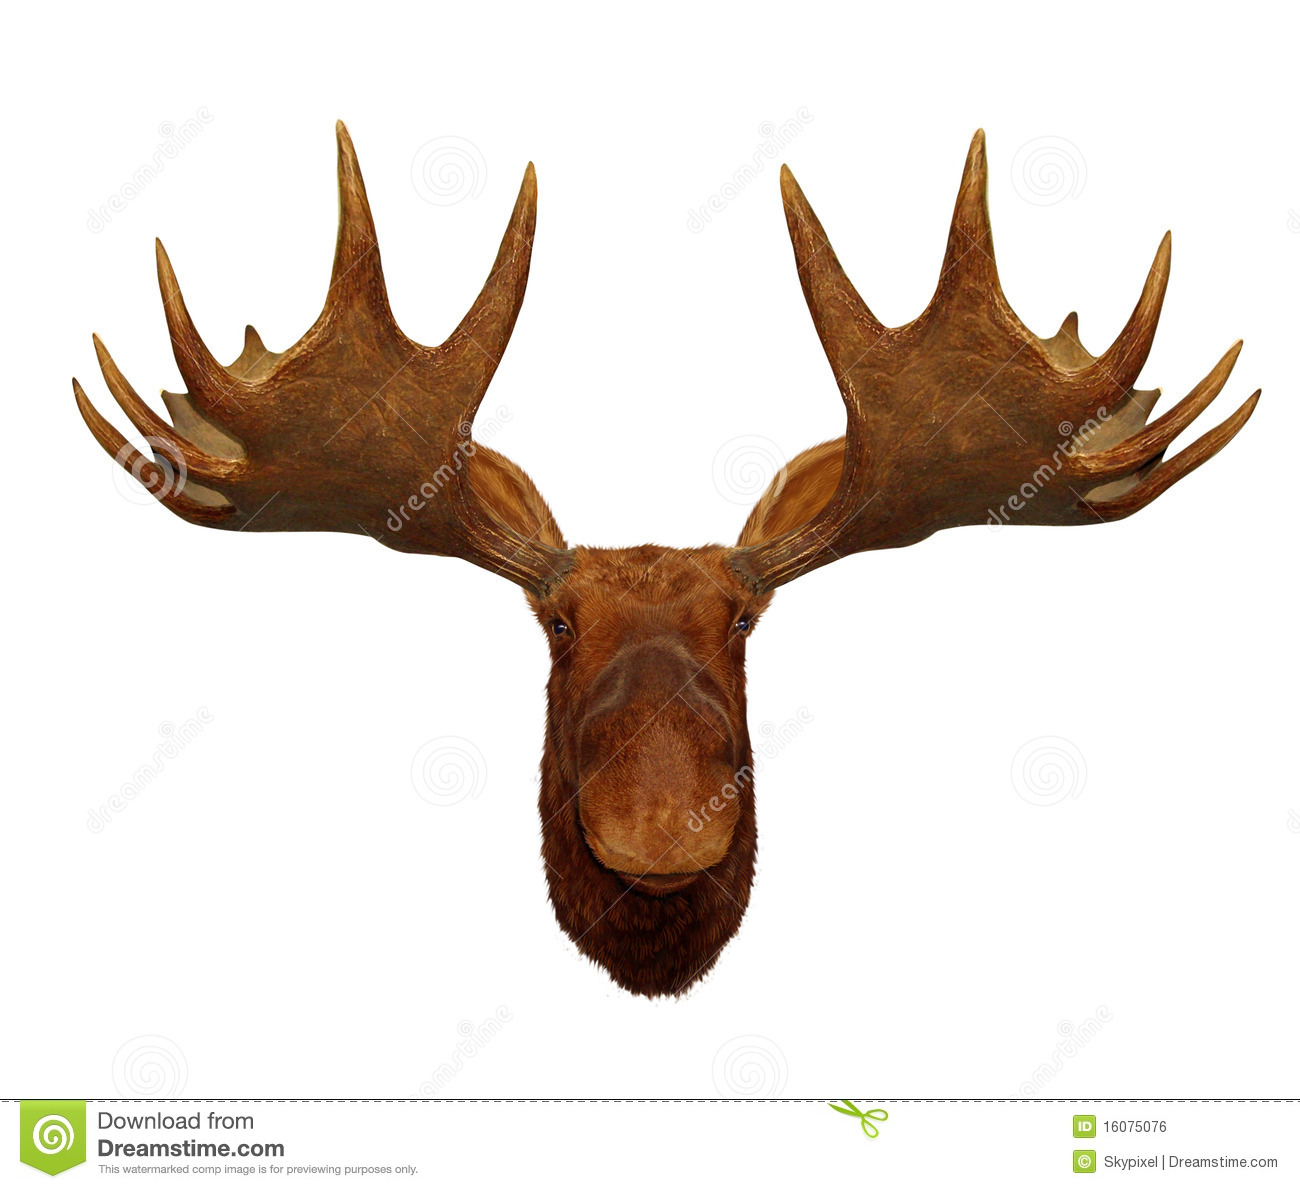 elk antlers graphic - photo #17